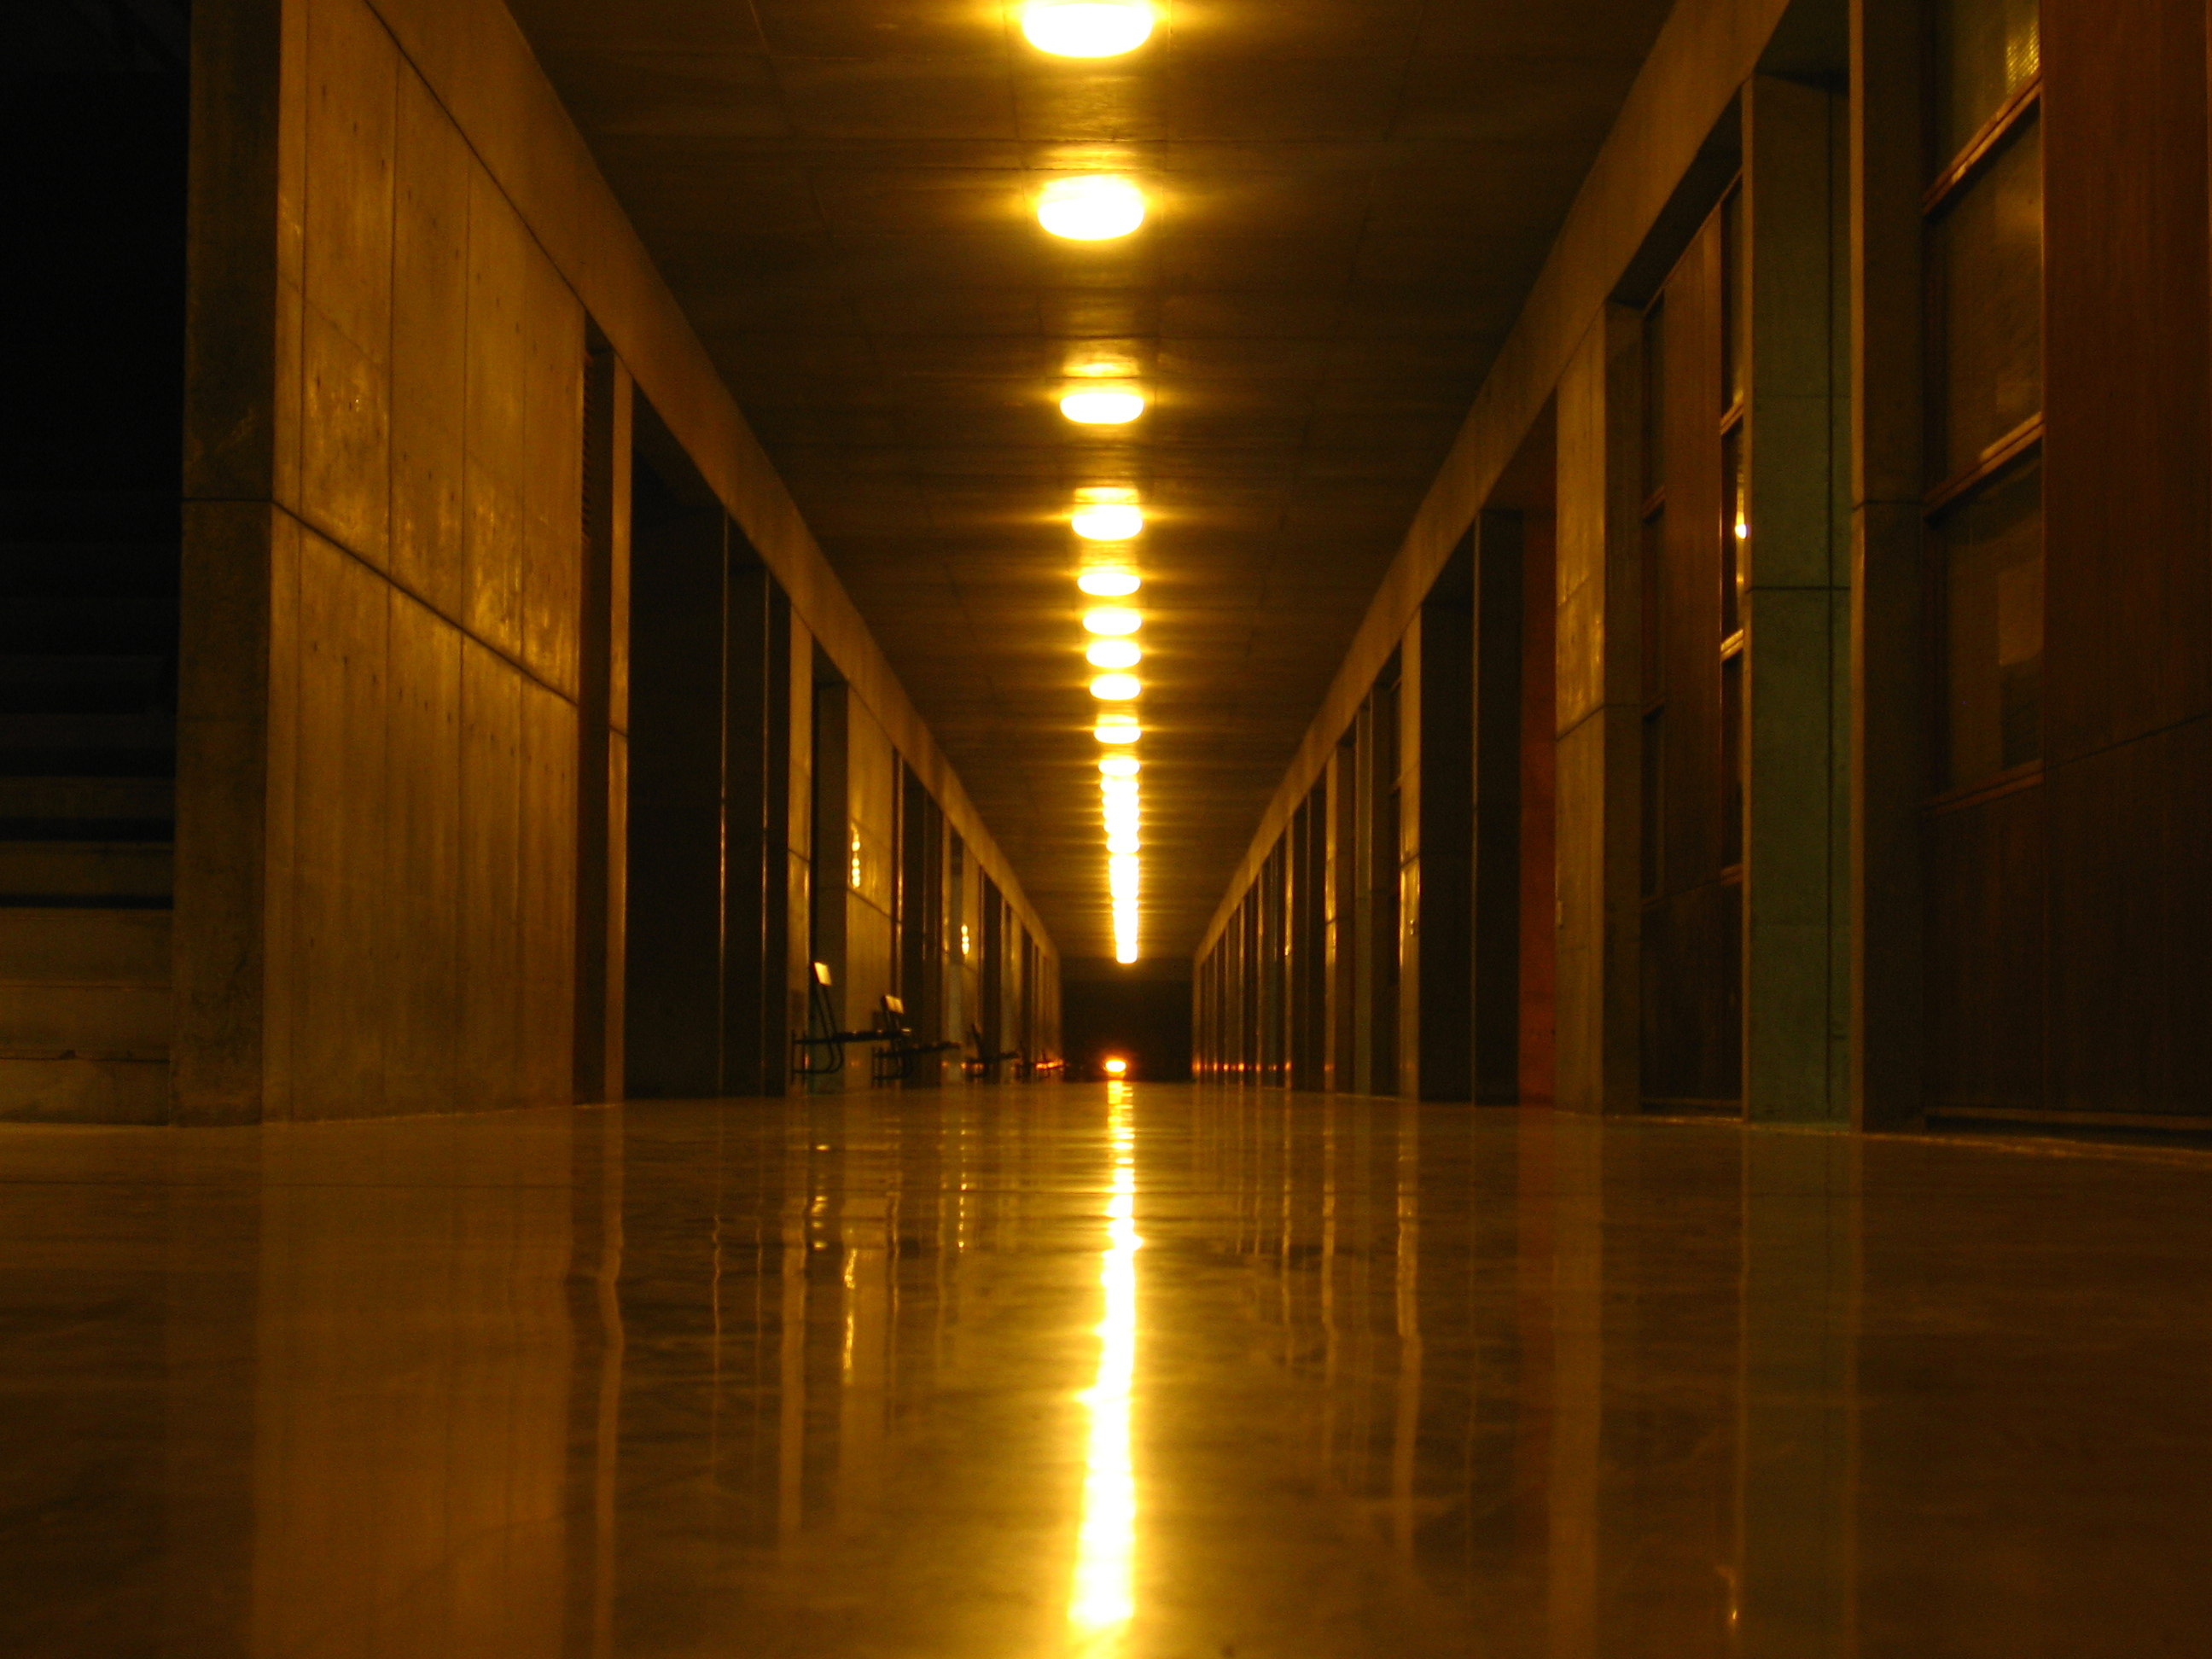 Corridor HD wallpapers, Desktop wallpaper - most viewed